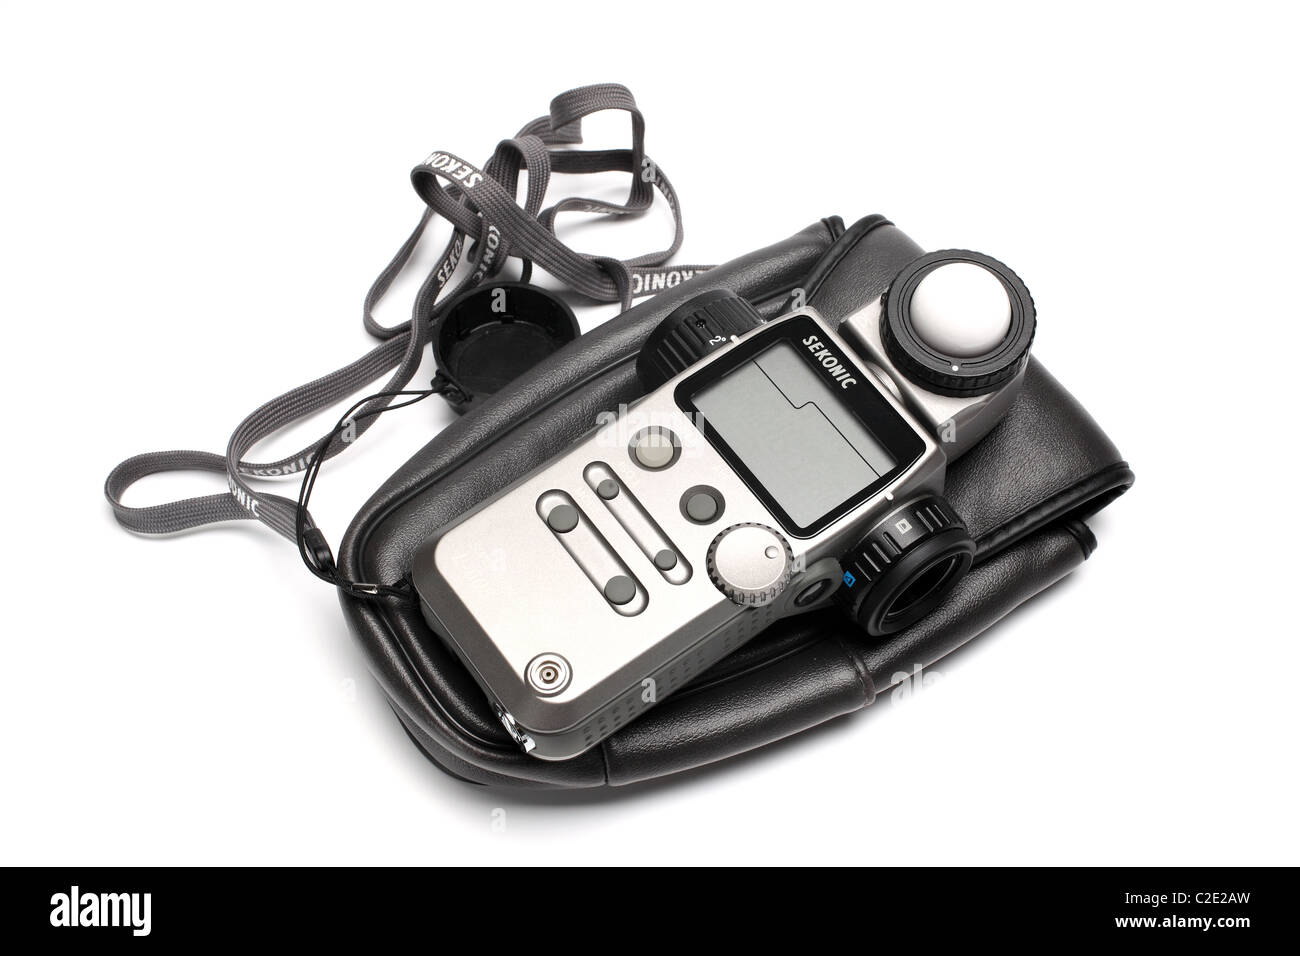 sekonic photo equipment light meter - Stock Image